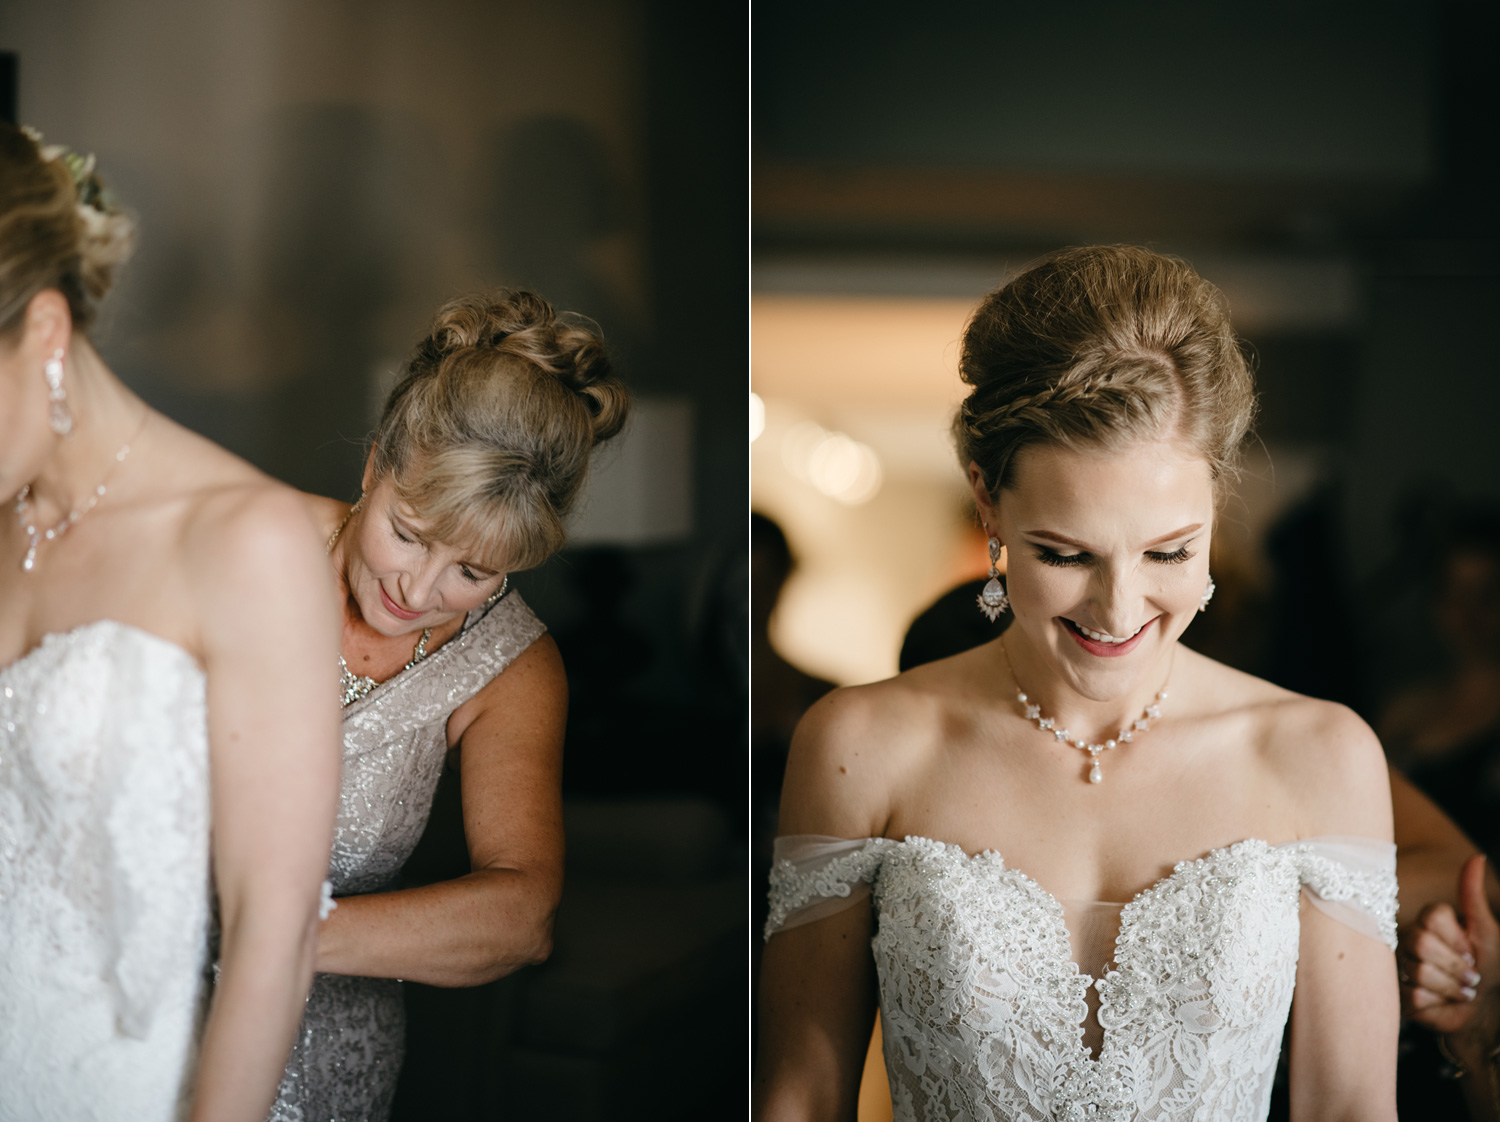 Close up photos of bride putting on wedding dress